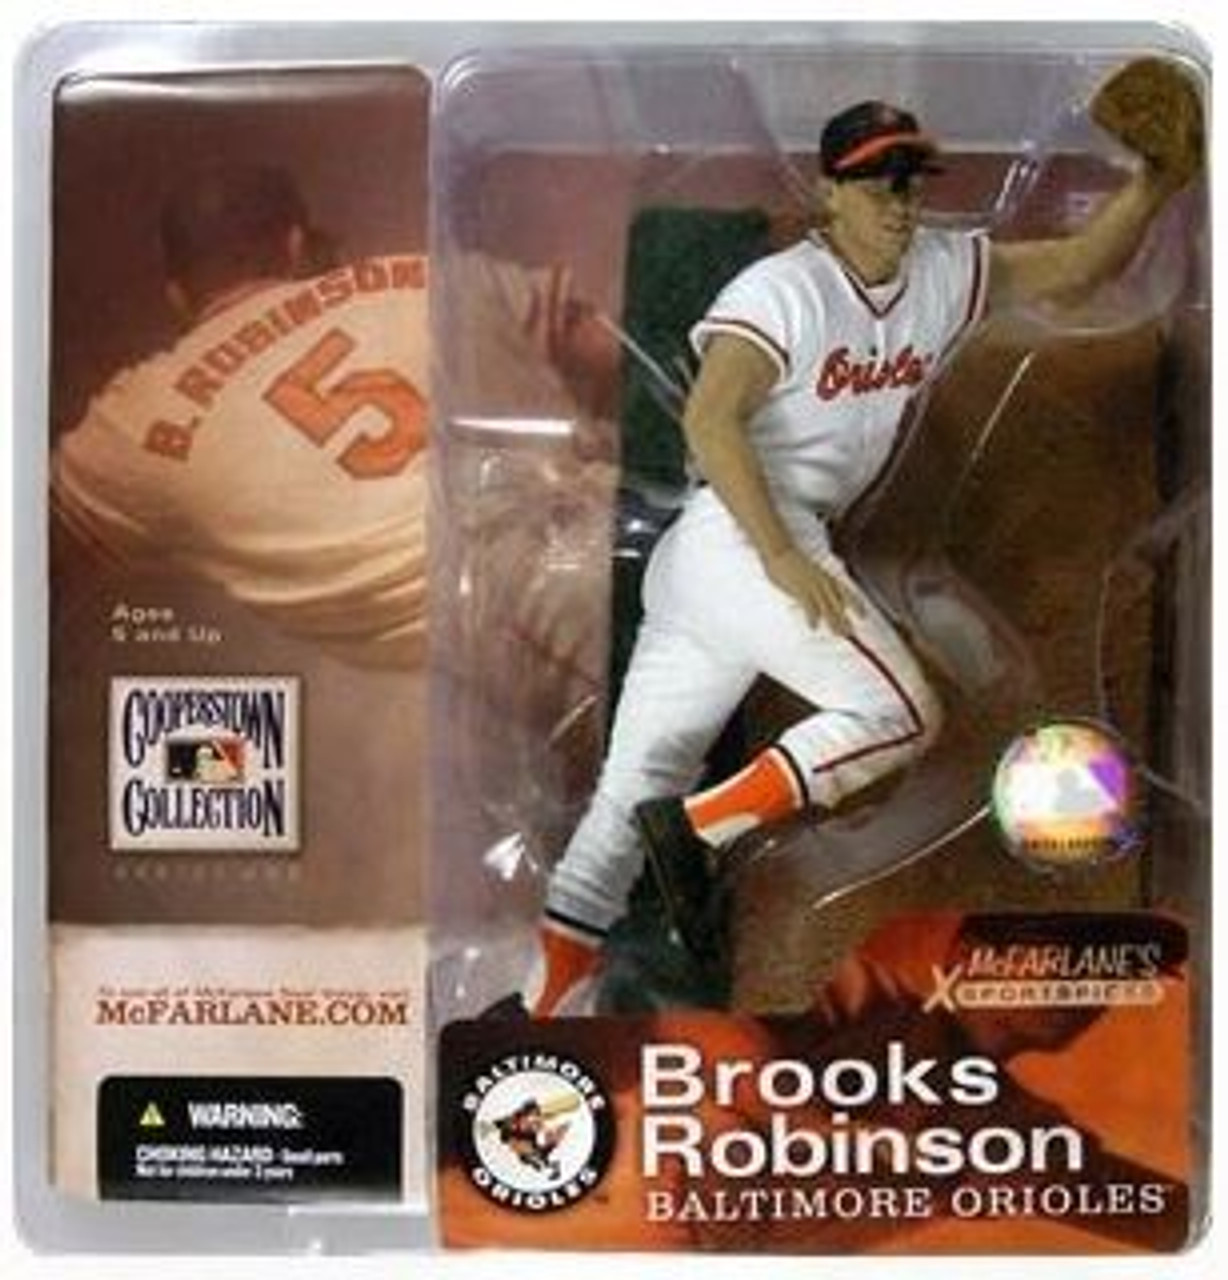 McFarlane Toys MLB Cooperstown Collection Series 1 Brooks Robinson Action Figure [White Jersey]